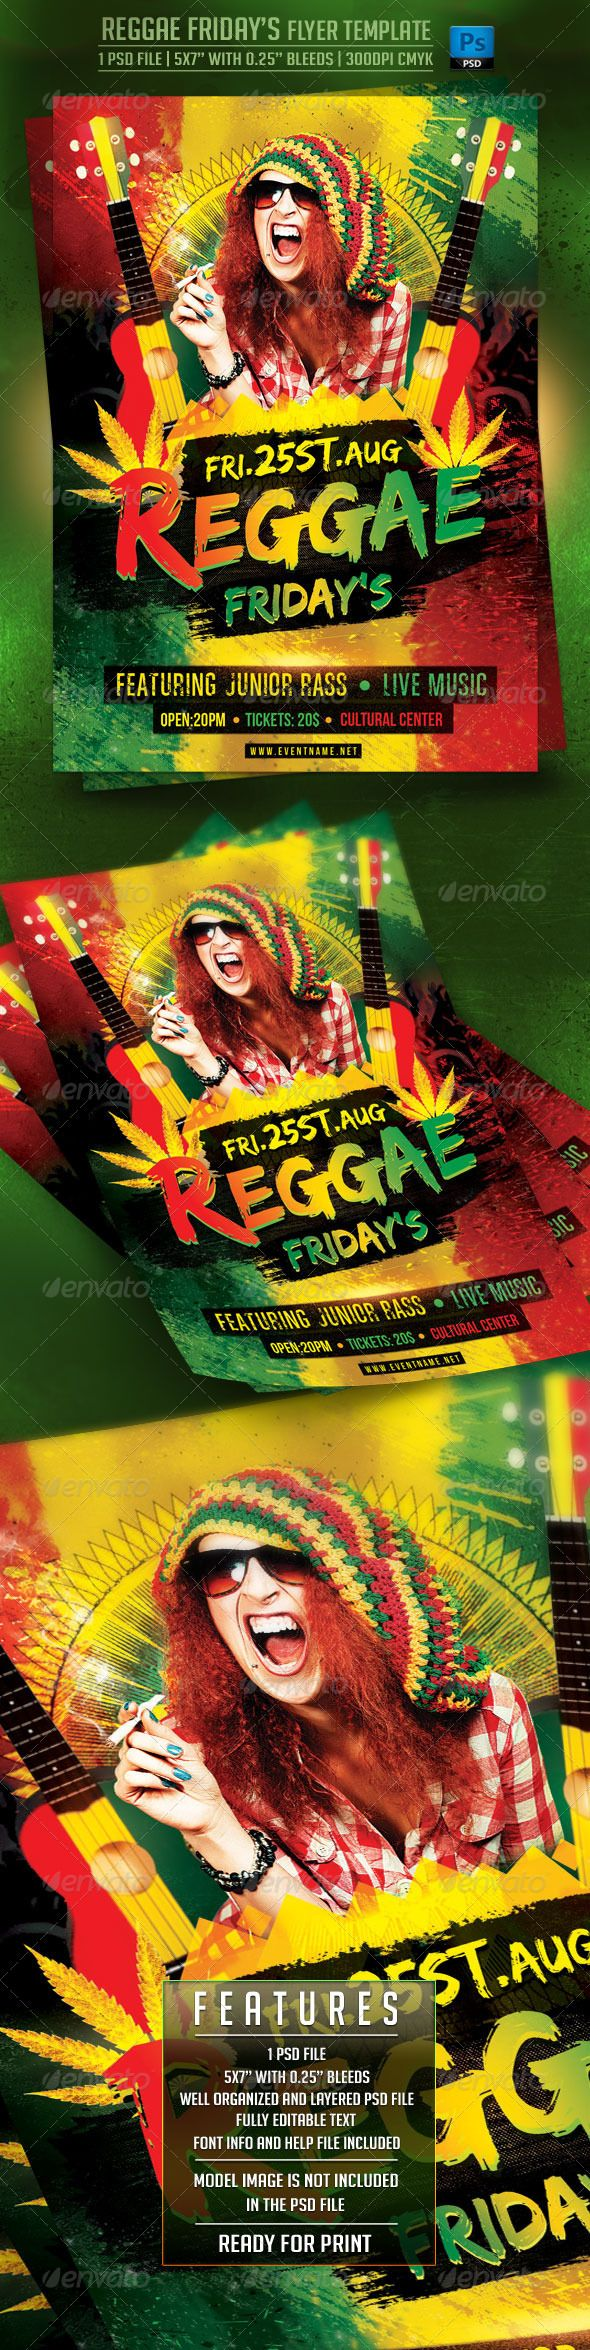 Reggae Friday's Flyer Template — Photoshop PSD #music #drink • Available here → https://graphicriver.net/item/reggae-fridays-flyer-template/7843054?ref=pxcr